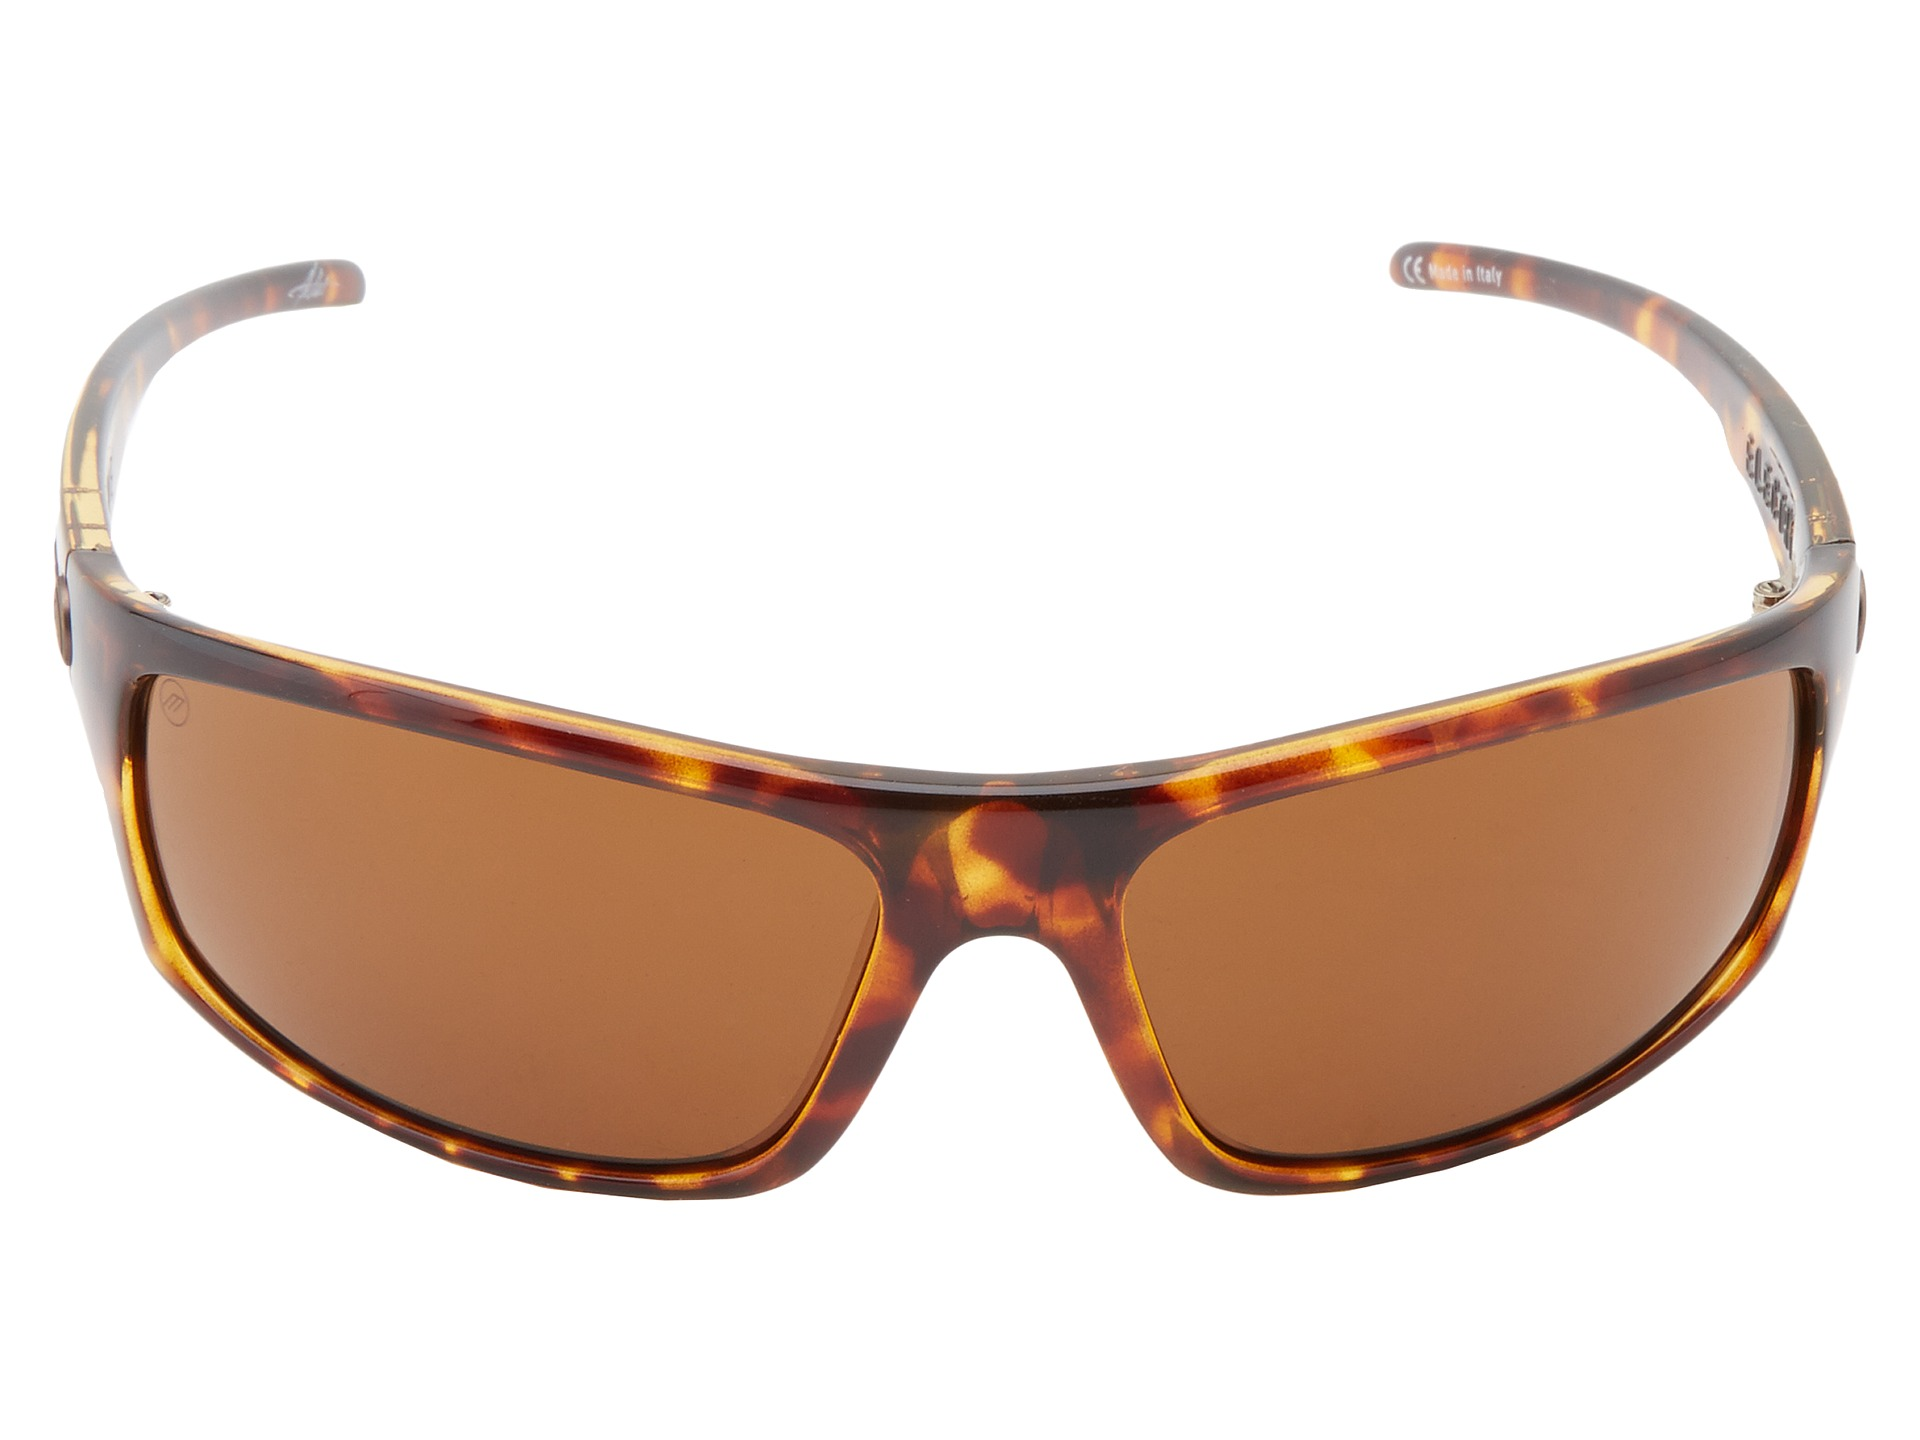 4f8fe68166 Electric Tech One Polarized Sunglasses Review